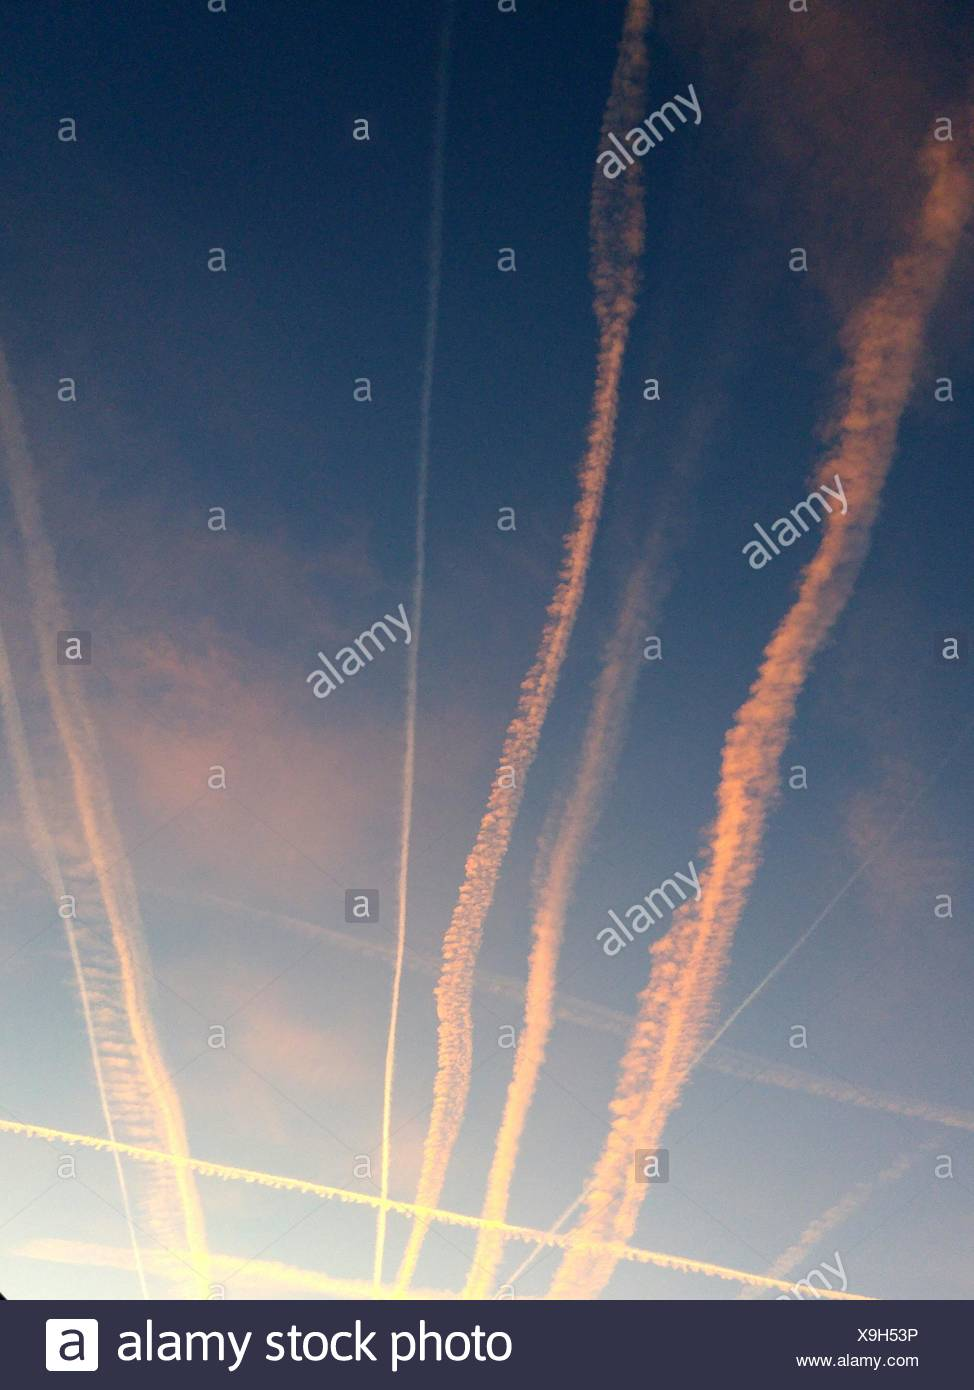 Low Angle View Of Vapor Trails In Sky At Sunset - Stock Image